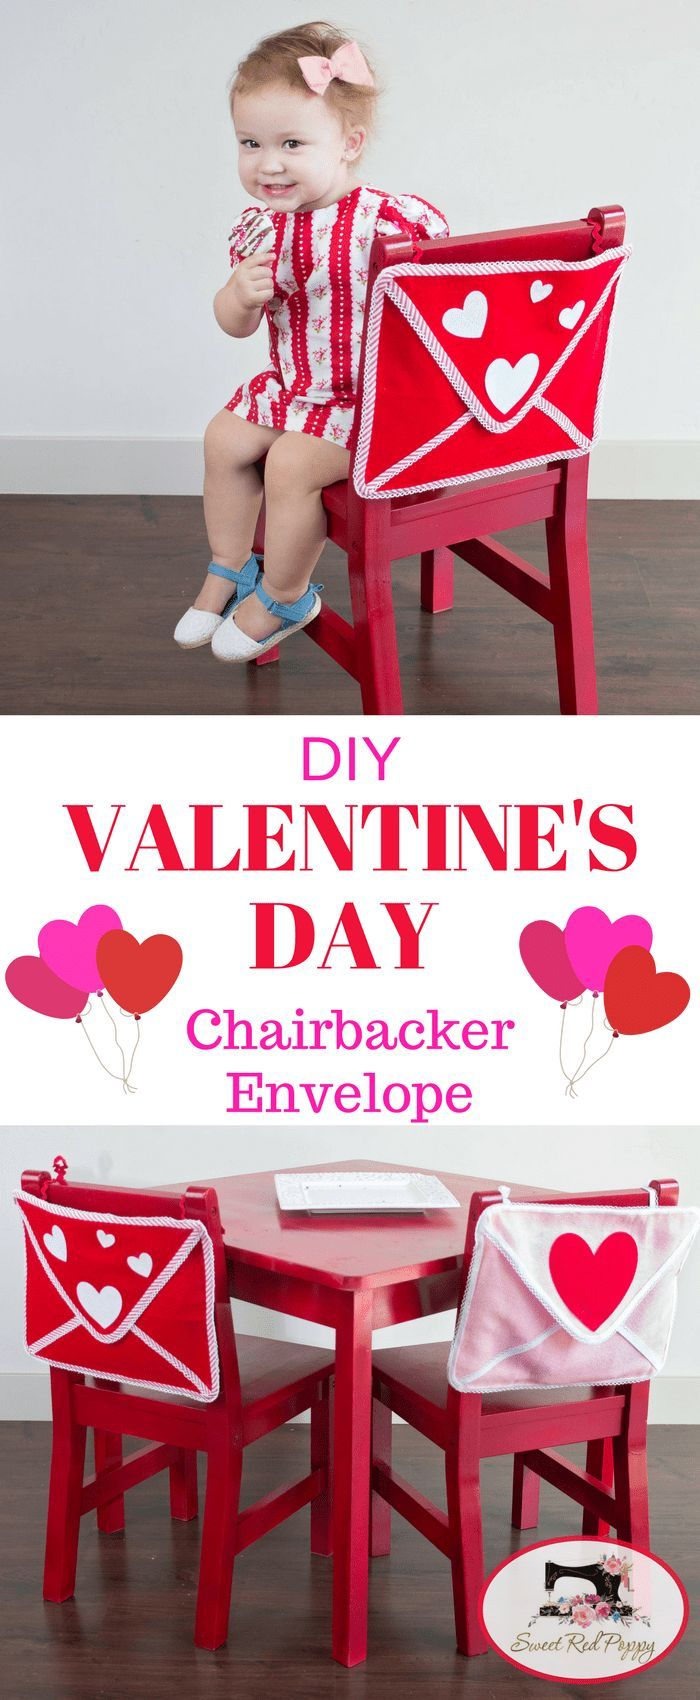 Valentineu0027s Day Envelope Chair Backer Tutorial American